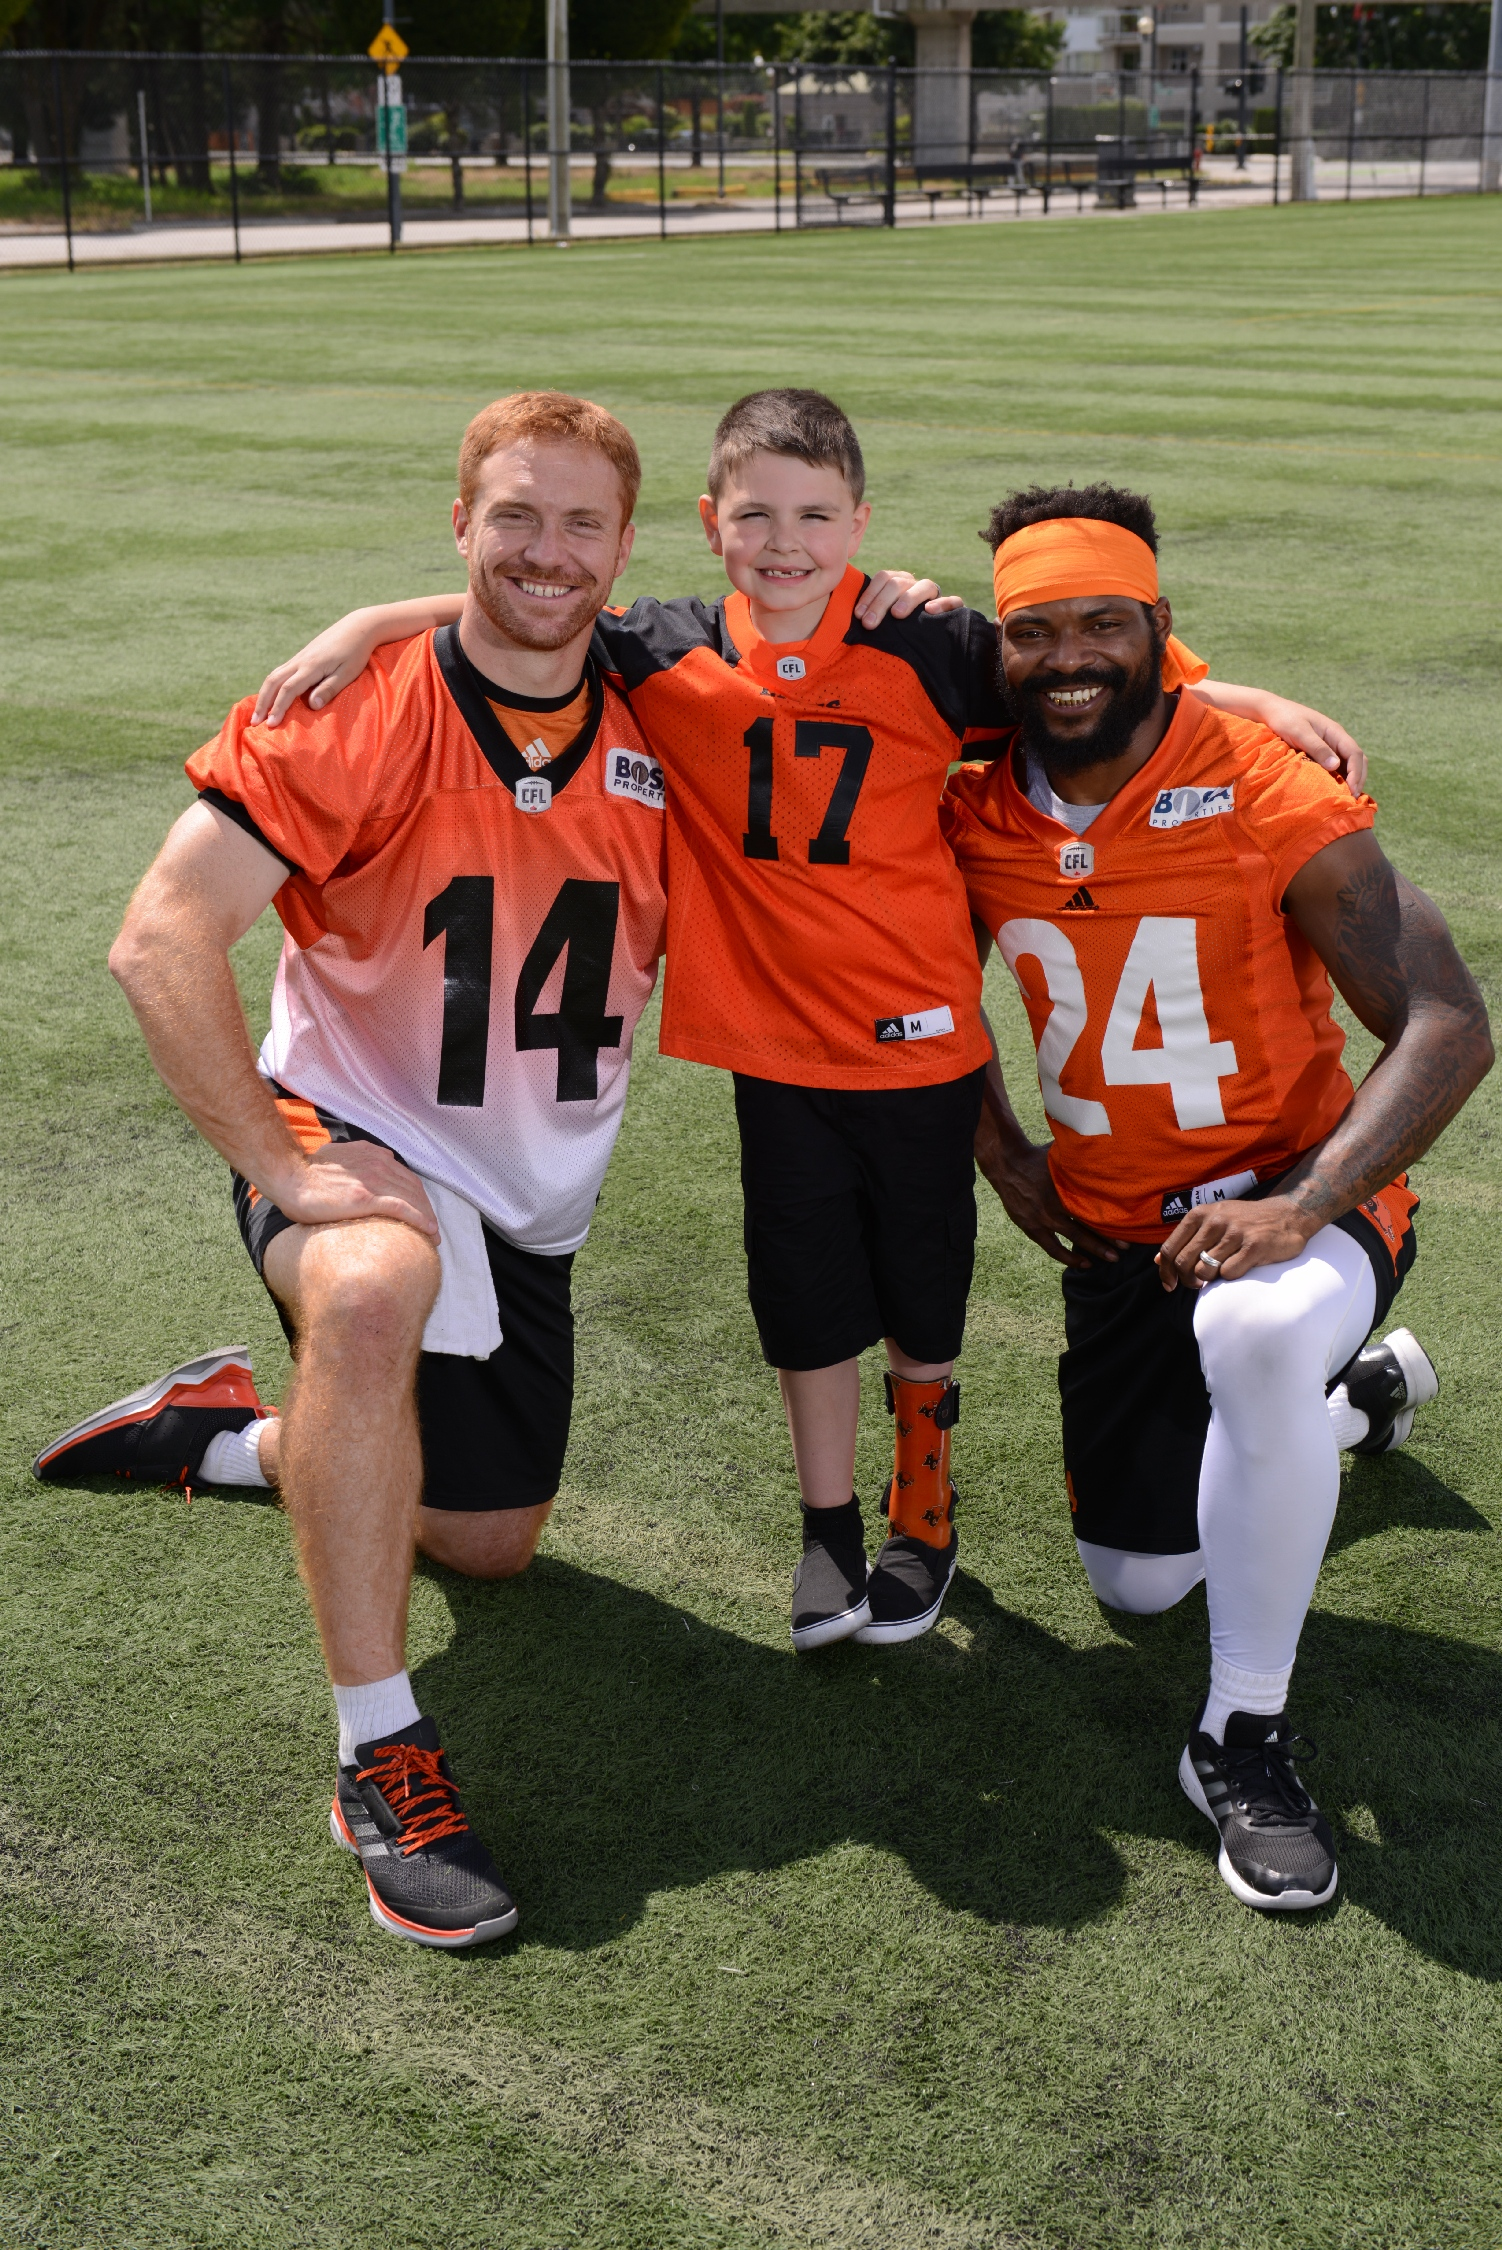 Darevin teams up with BC Lions players Travis Lulay (#14) and Jeremiah Johnson (#24).